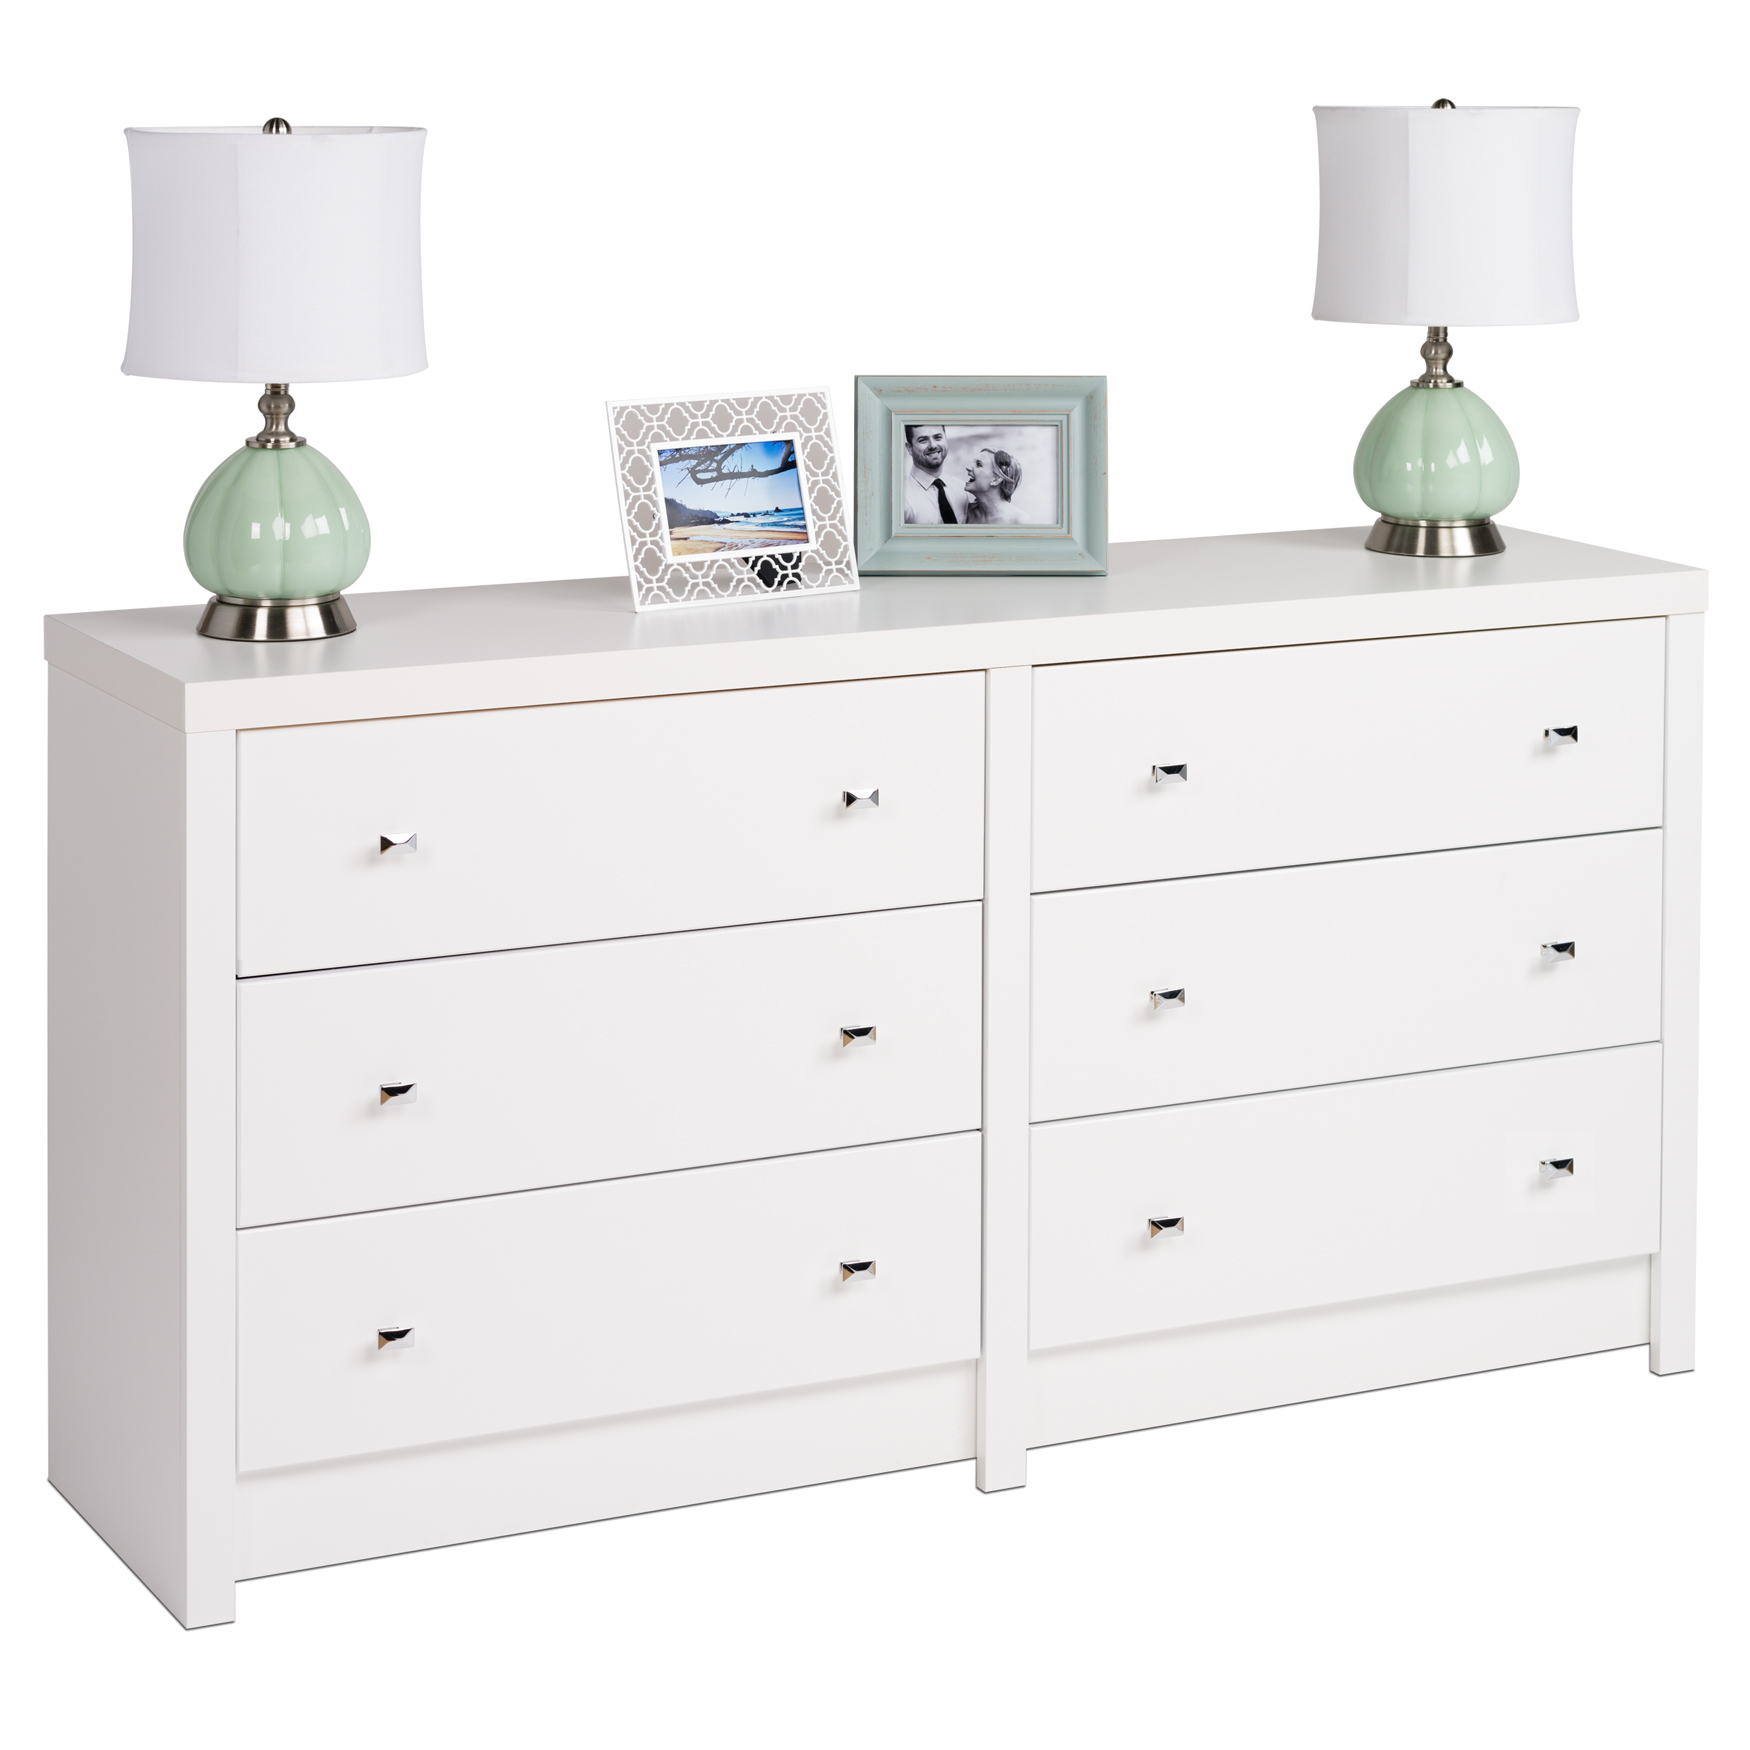 Calla 6-Drawer Dresser, WHITE